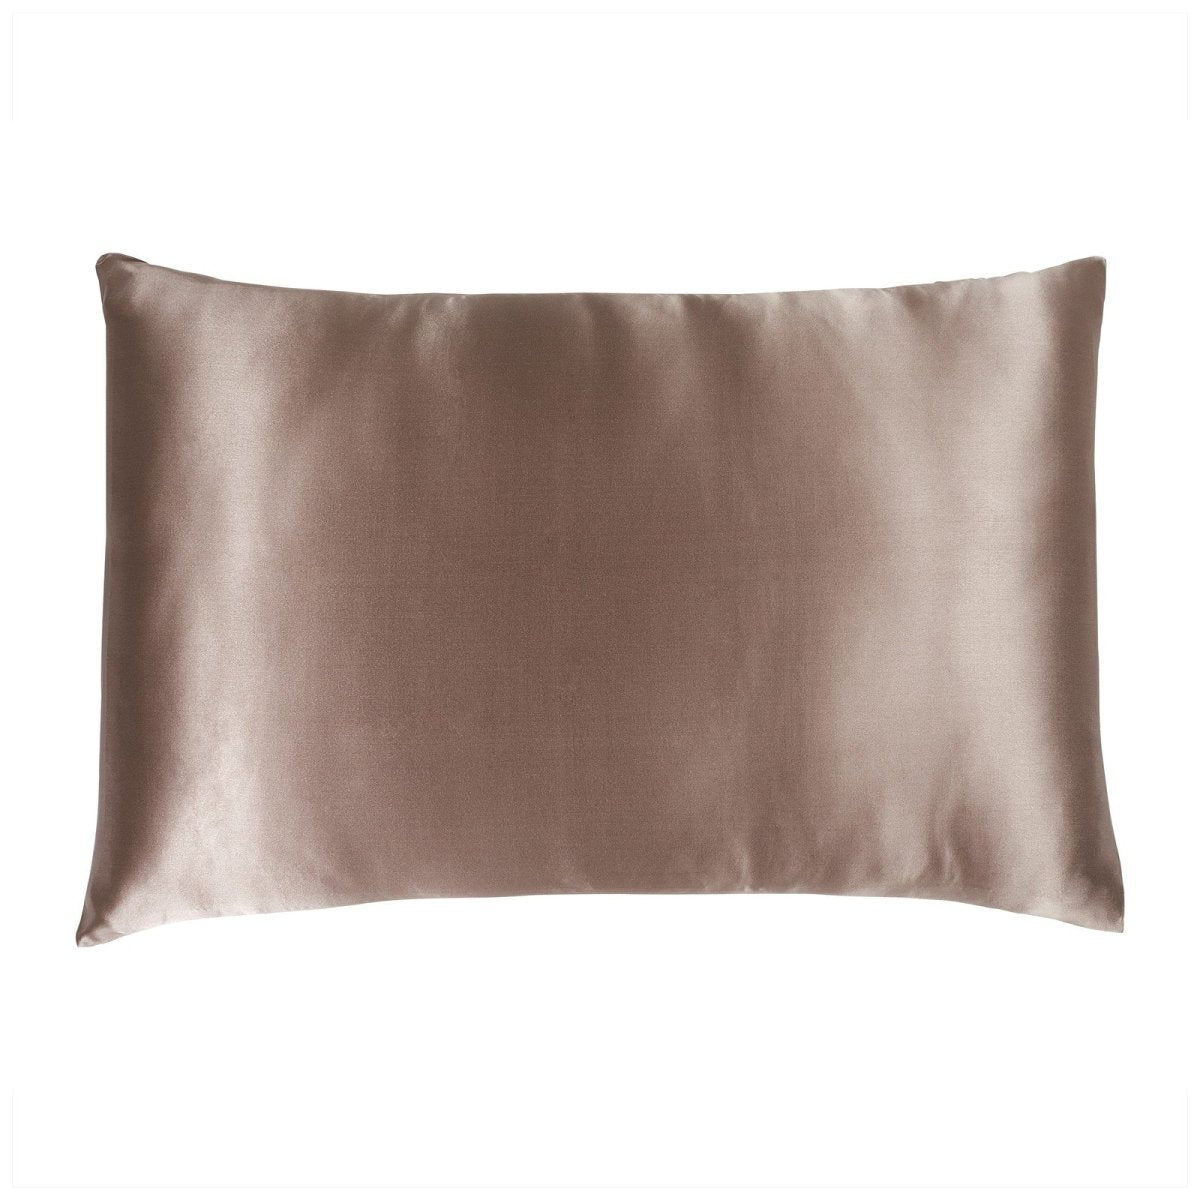 Silk Haze Pillowcase - Minimax